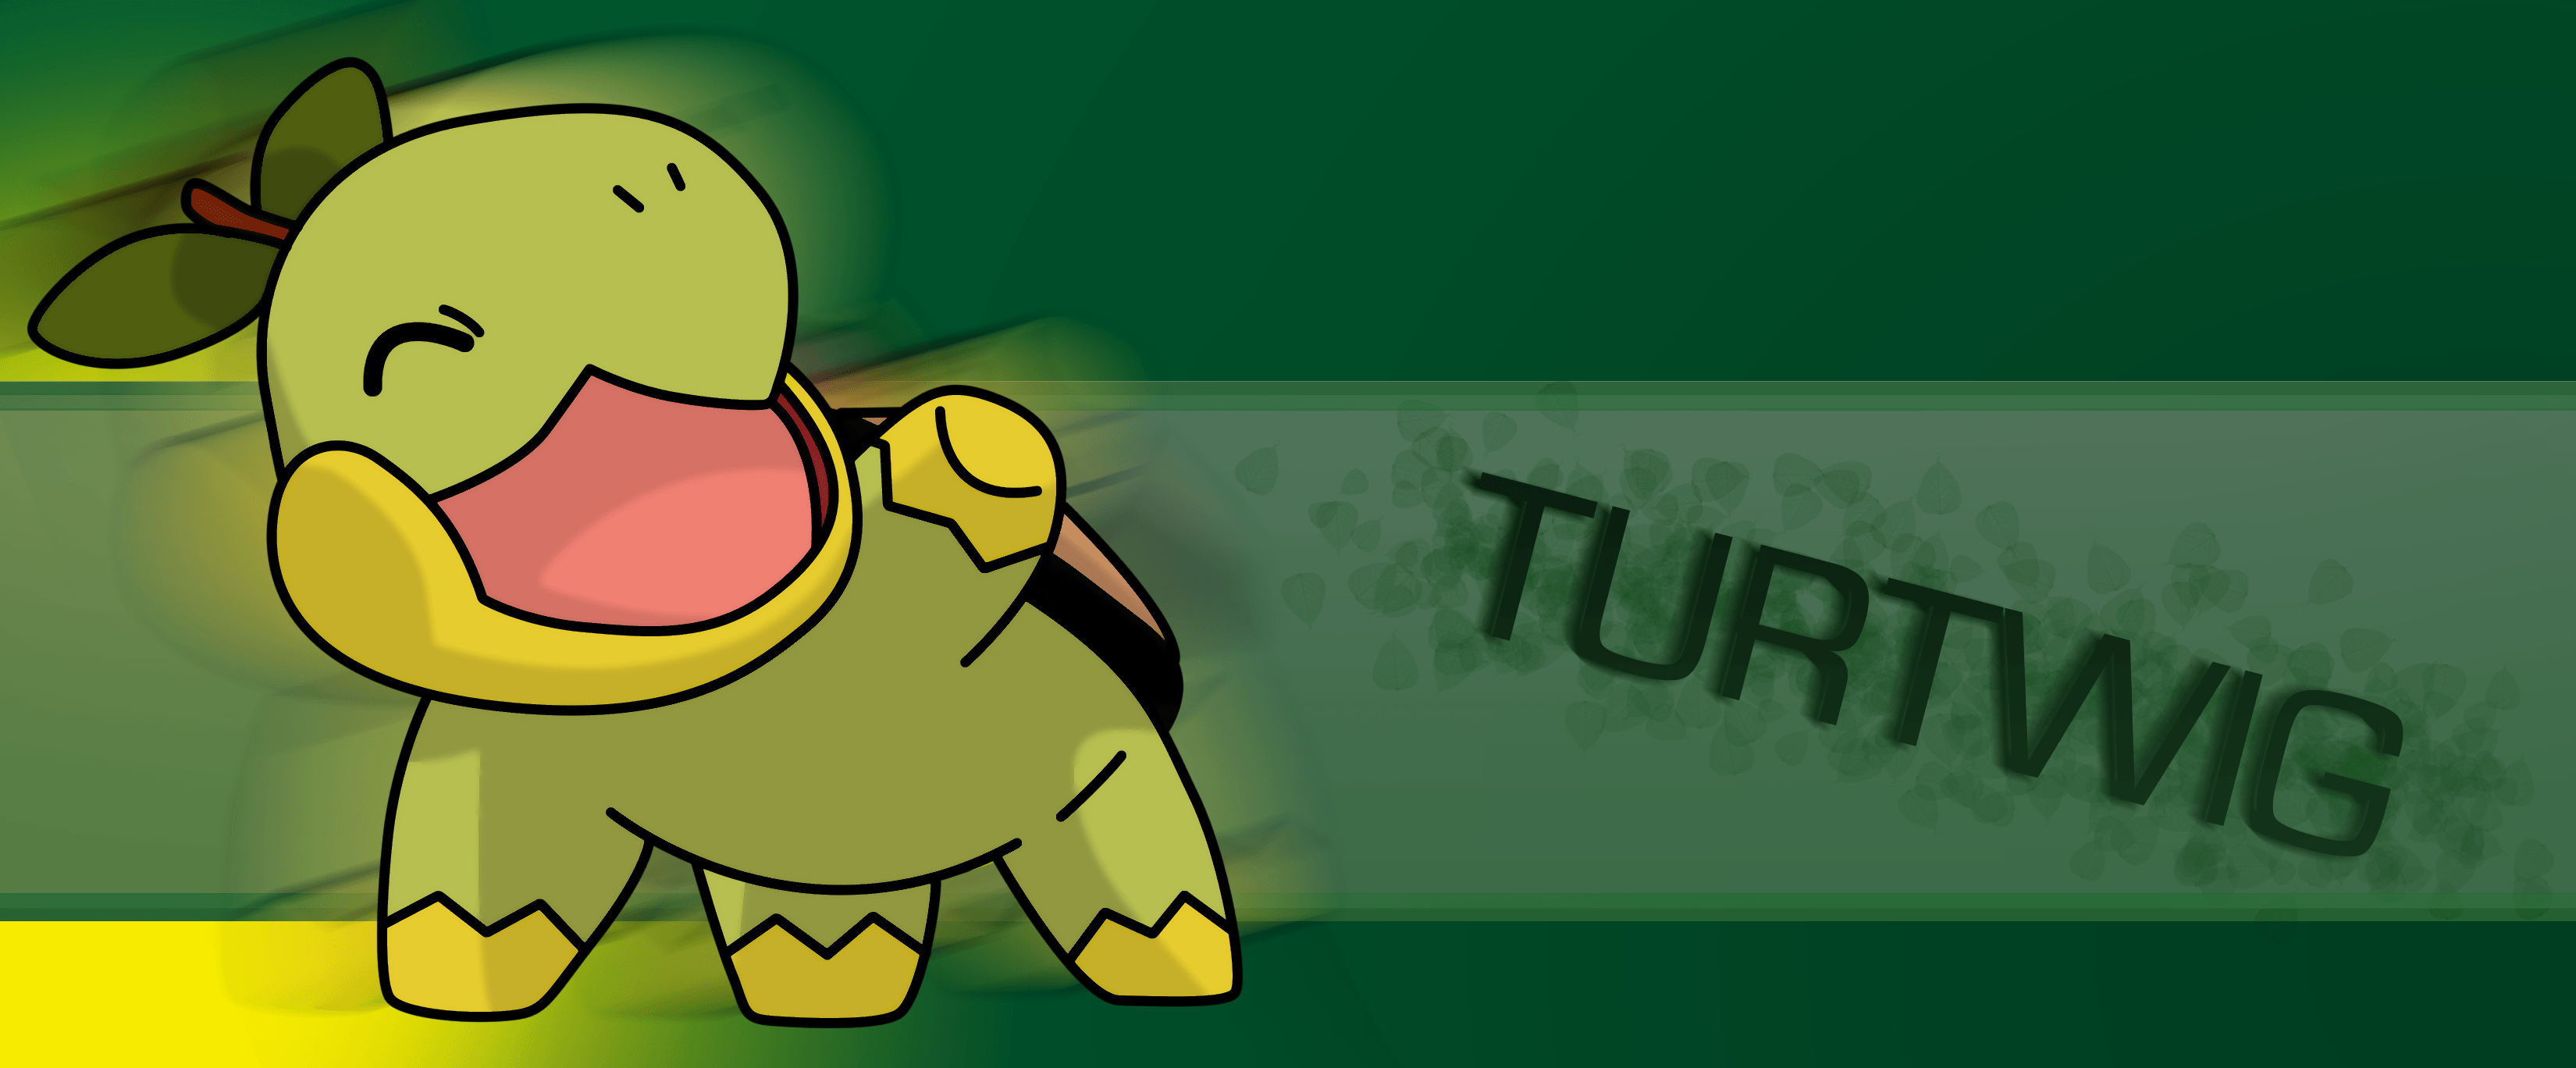 Turtwig by Twiggmister on DeviantArt